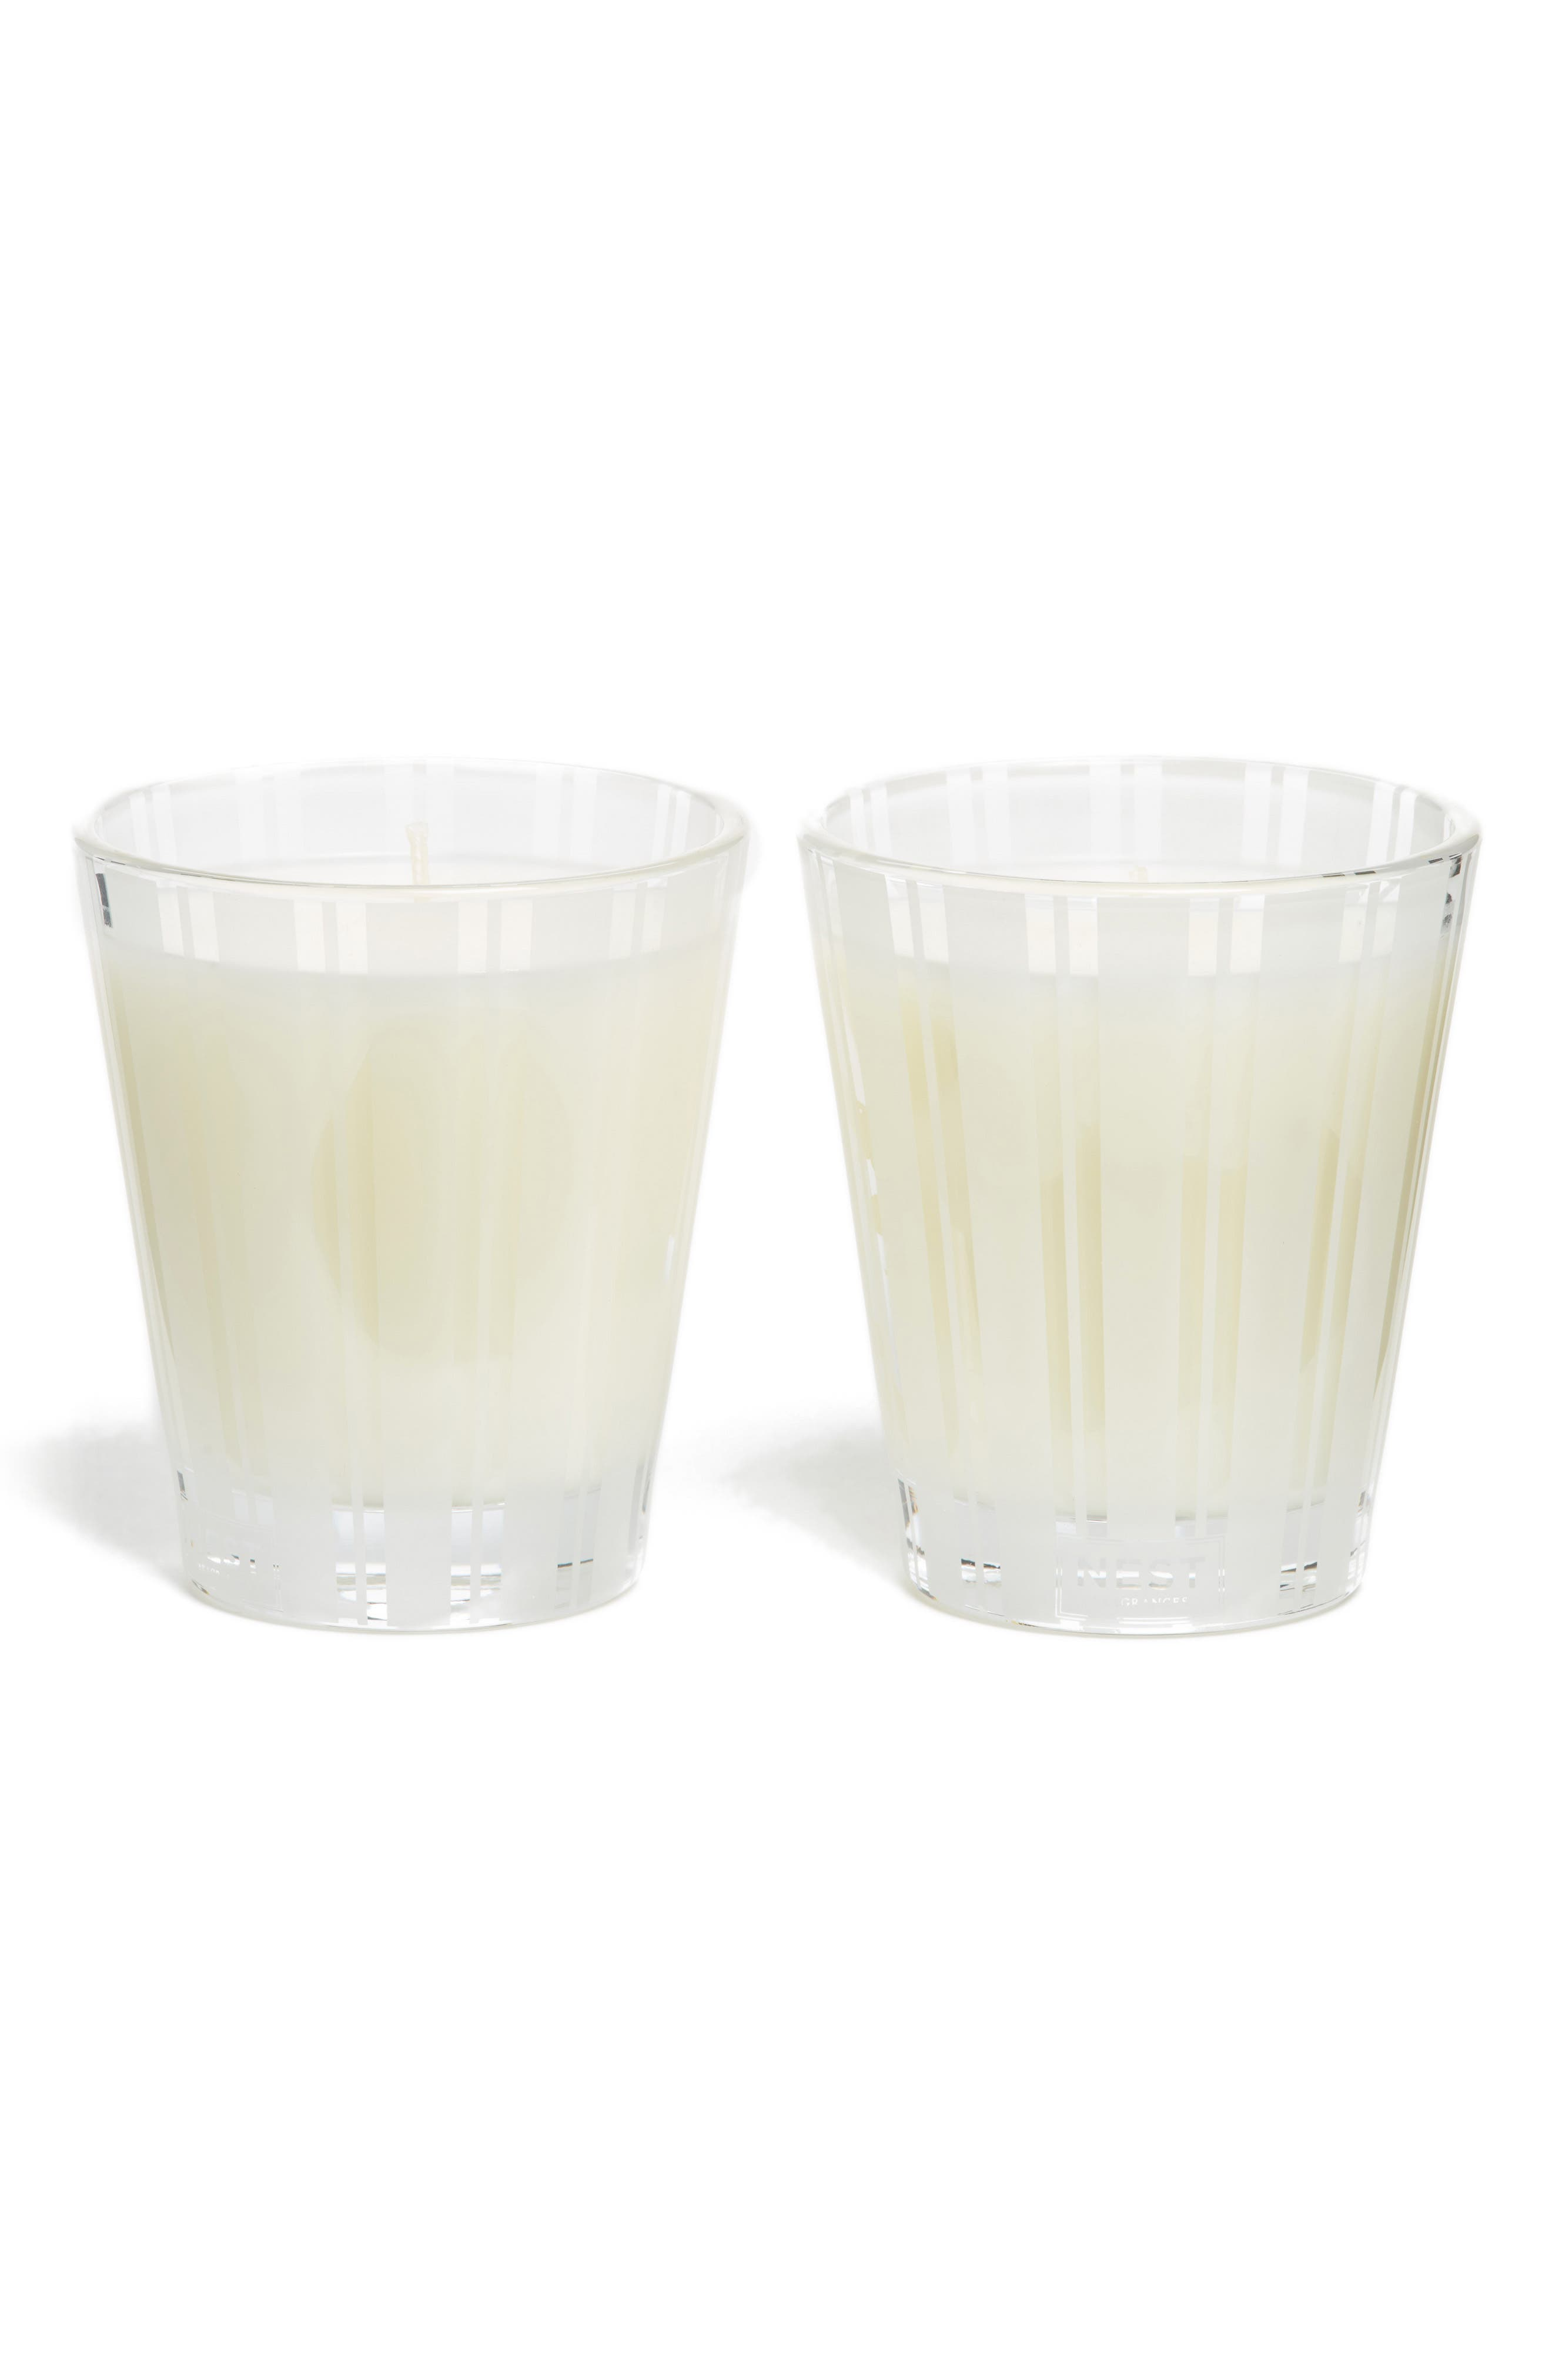 Grapefruit Scented Candle Duo,                         Main,                         color, 000